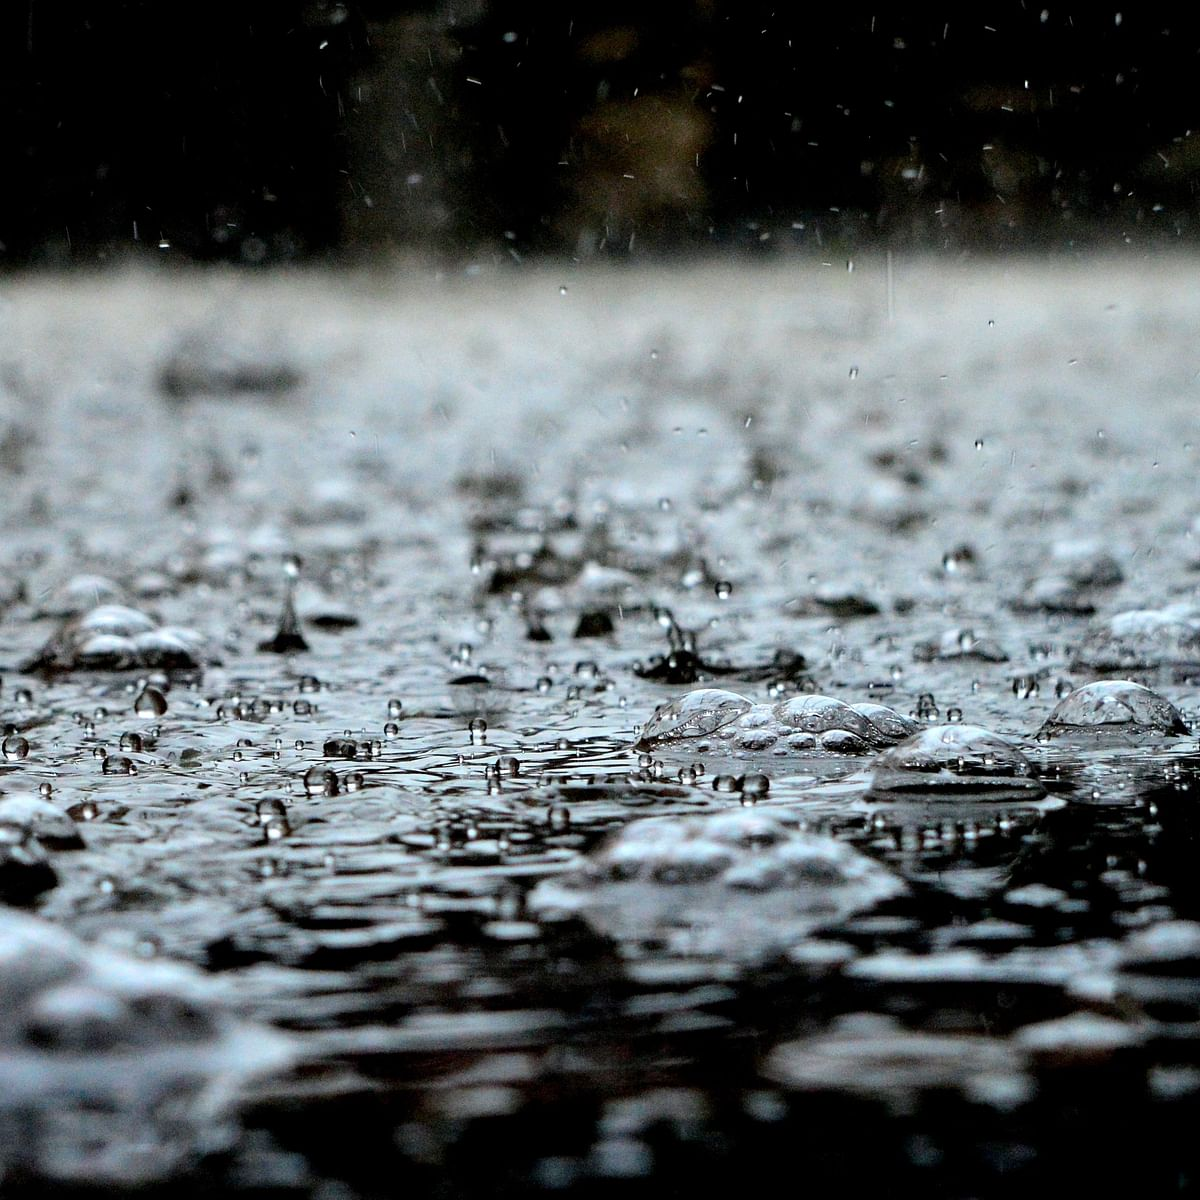 IMD predicts heavy rainfall at isolated places in Mumbai, Thane, Raigad over next 48 hours